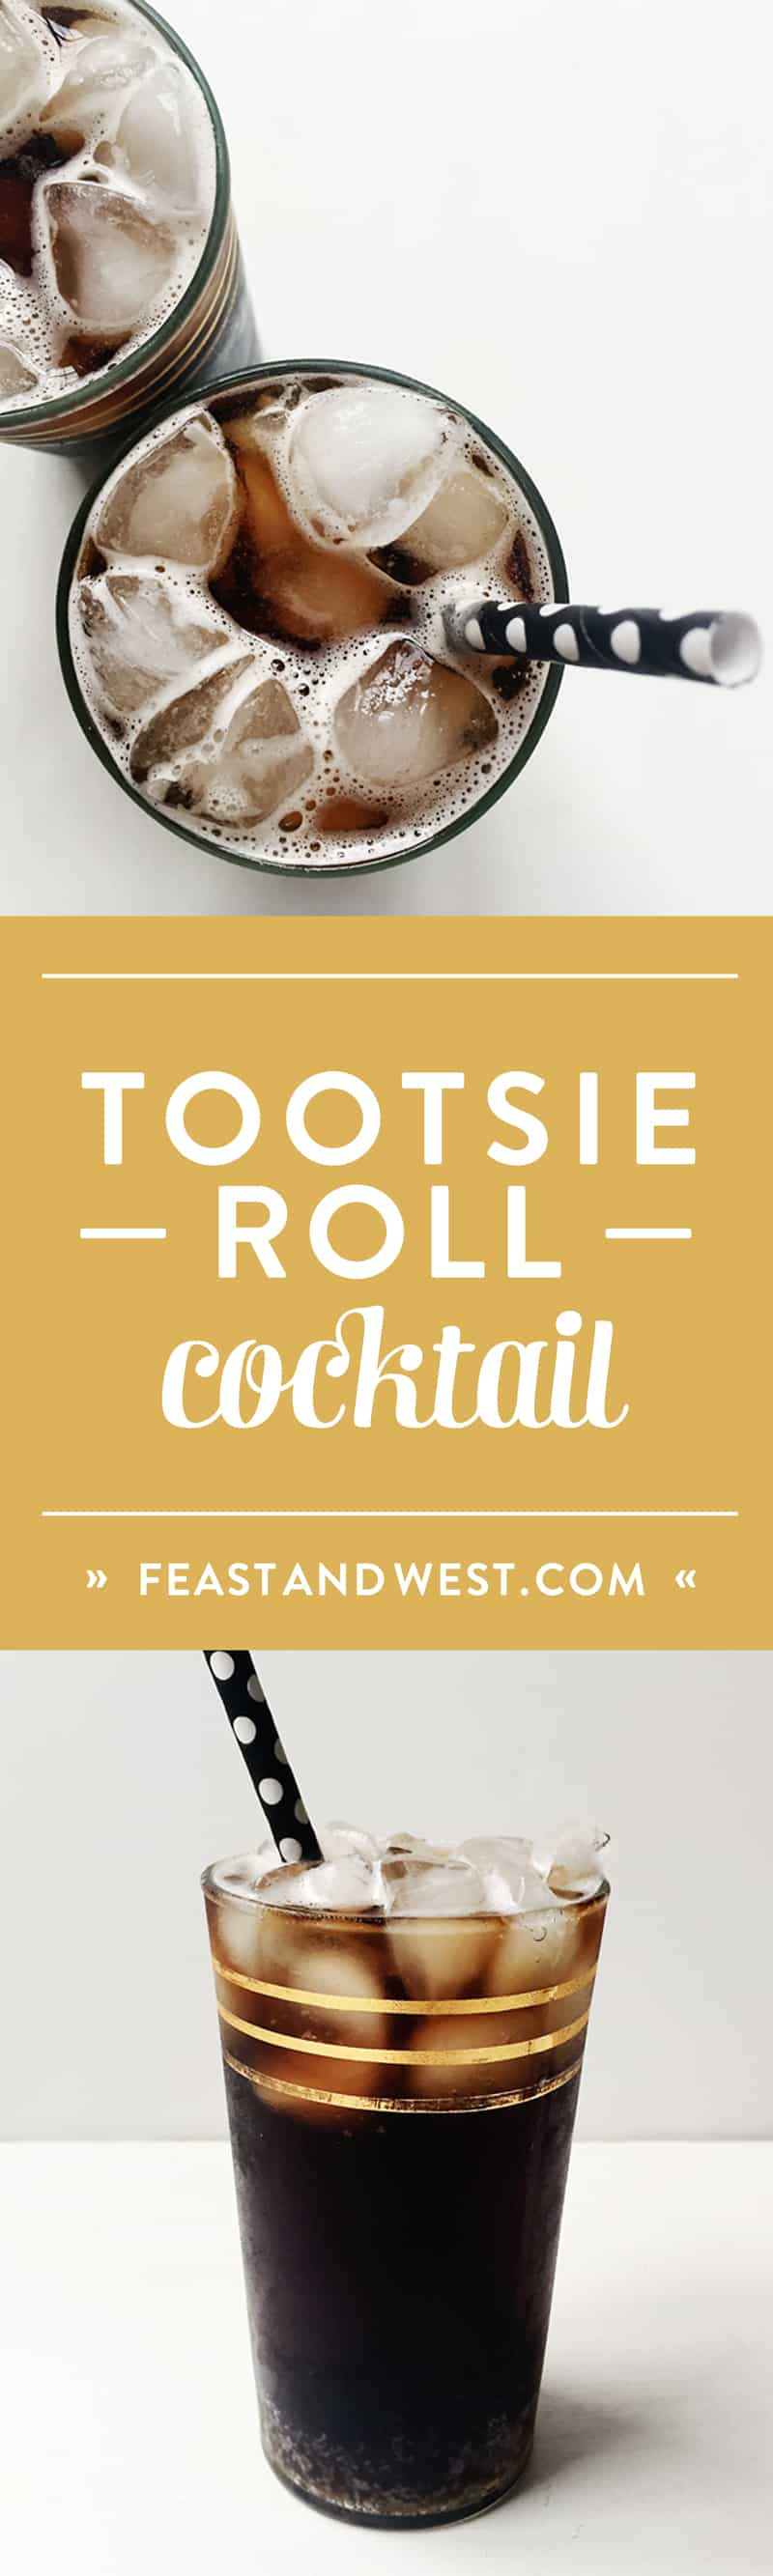 The Tootsie Roll Cocktail is a black candy cocktail fit for Halloween. Even though it's spooky and dark, it is sure to satisfy any sweet tooth! (via feastandwest.com)